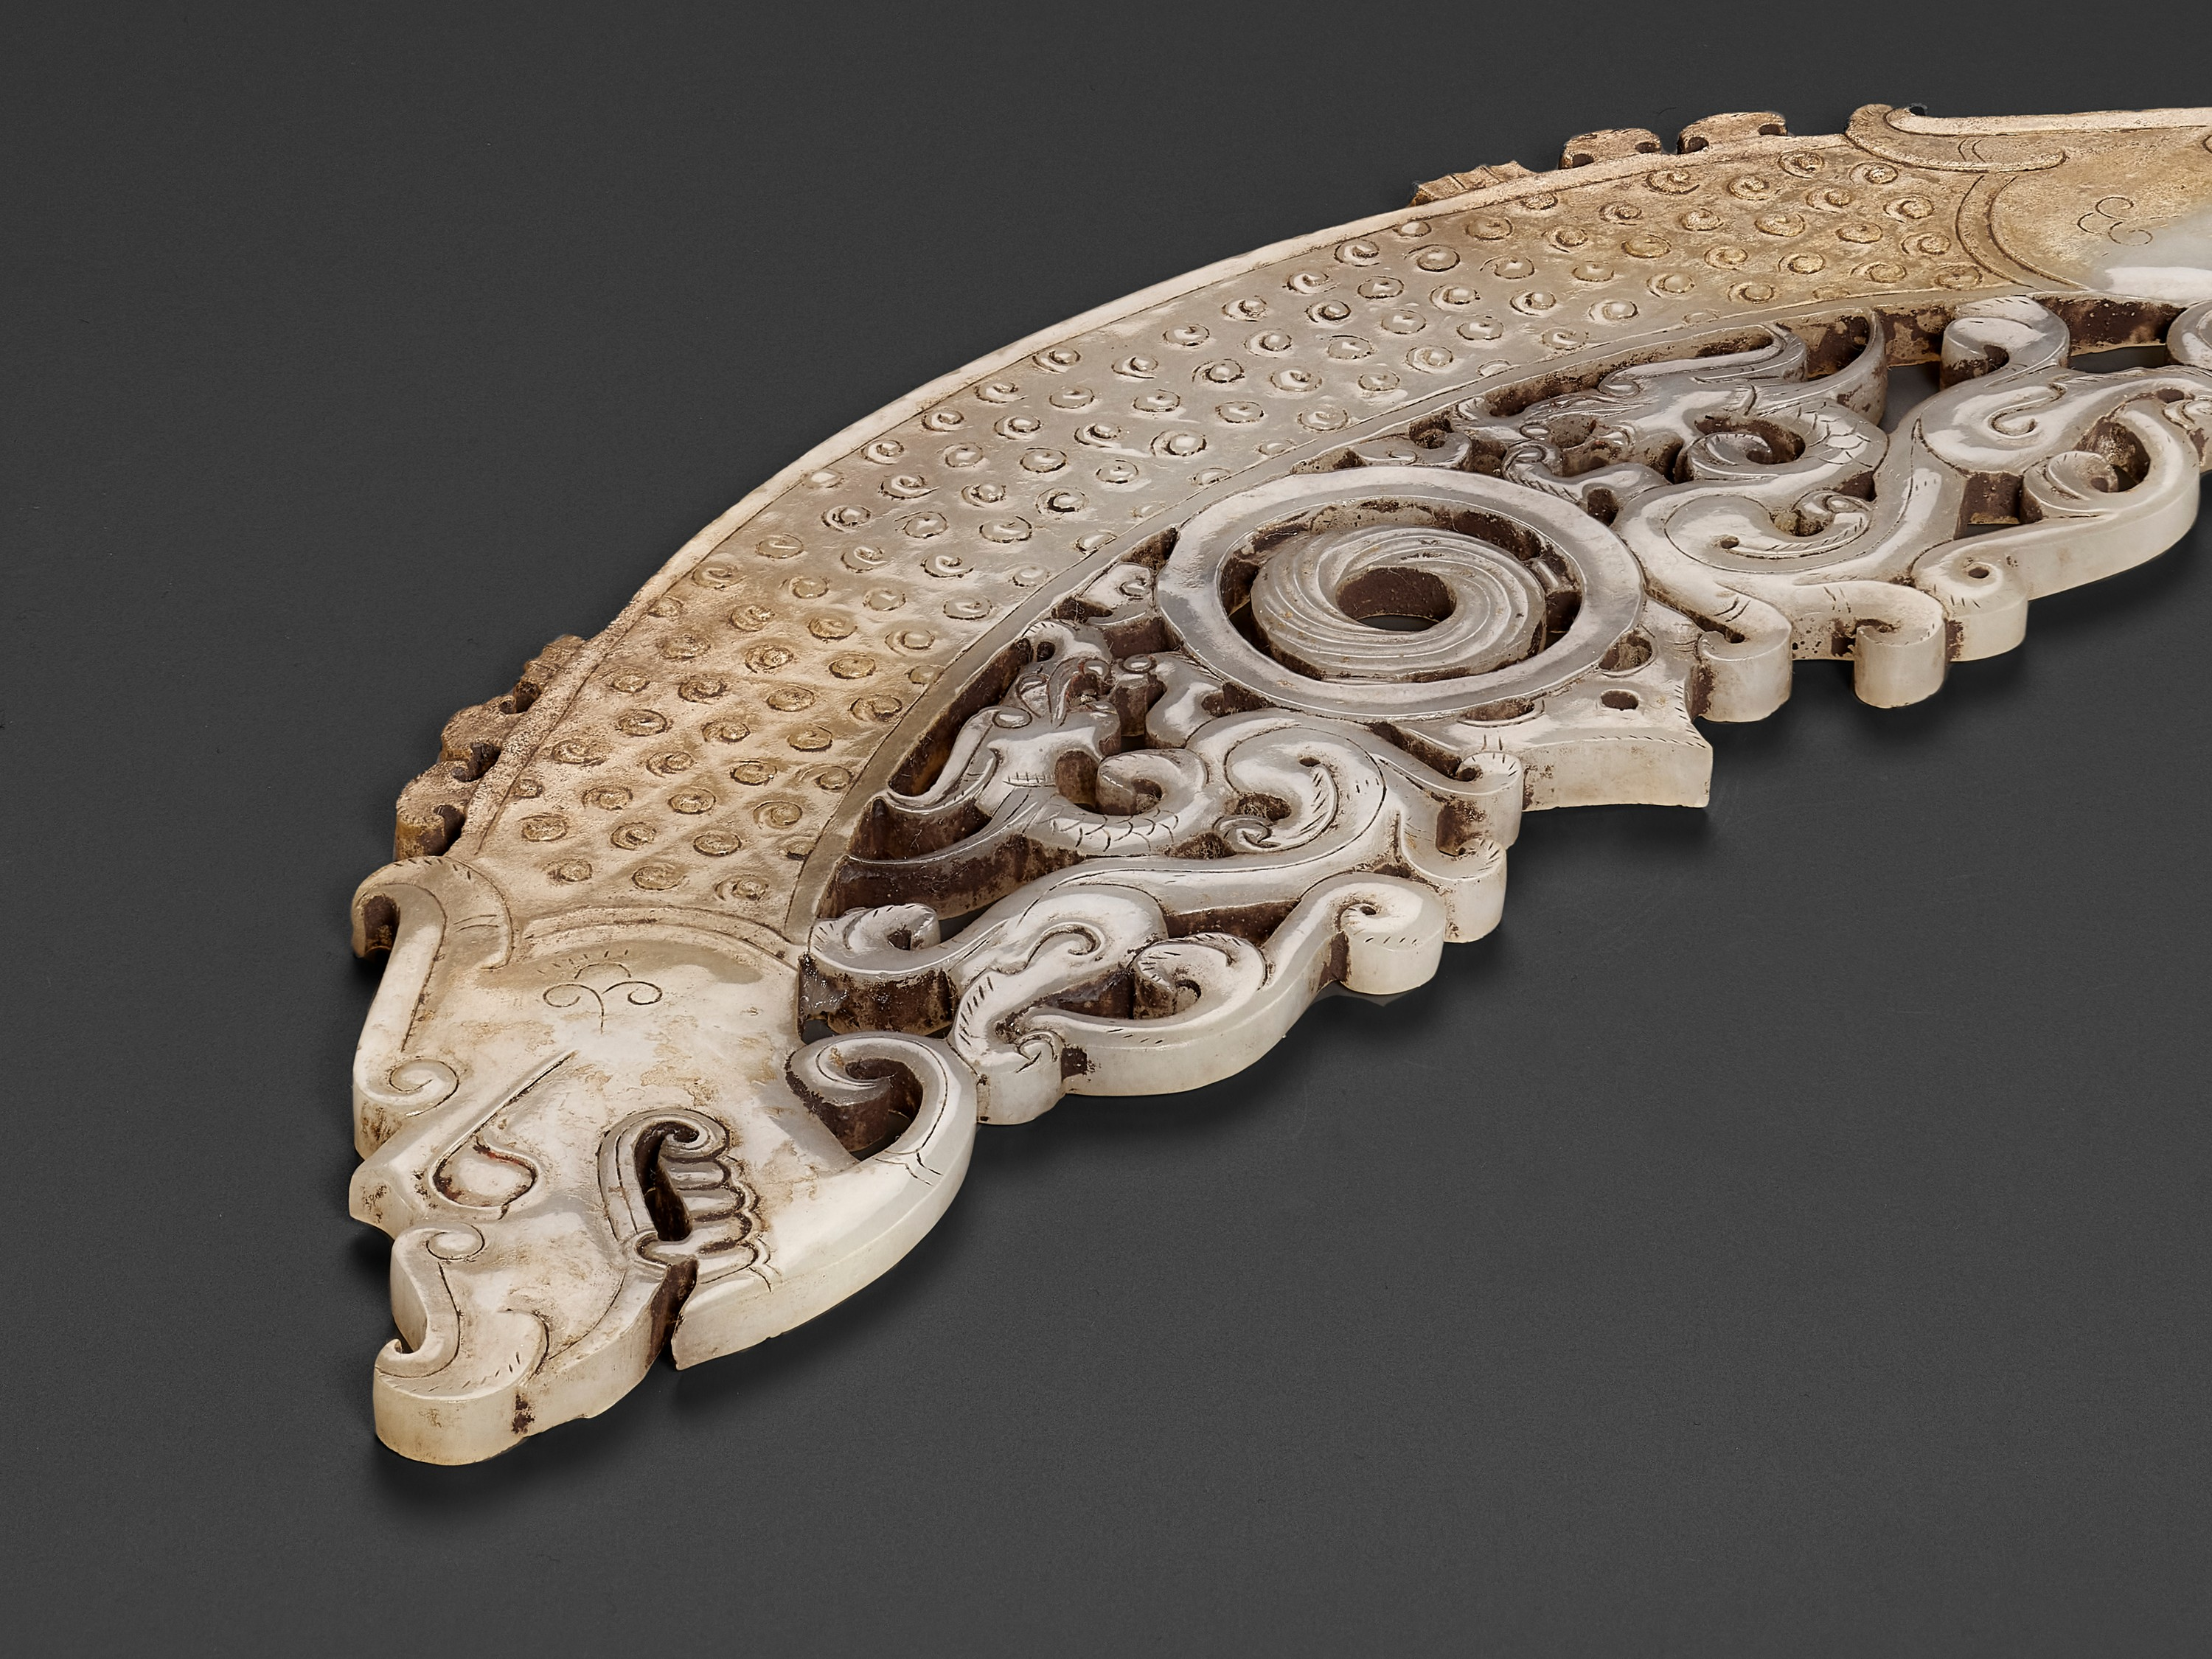 A WHITE AND RUSSET JADE 'DOUBLE DRAGON' PENDANT, HUANG, LATE EASTERN ZHOU TO HAN - Image 3 of 9